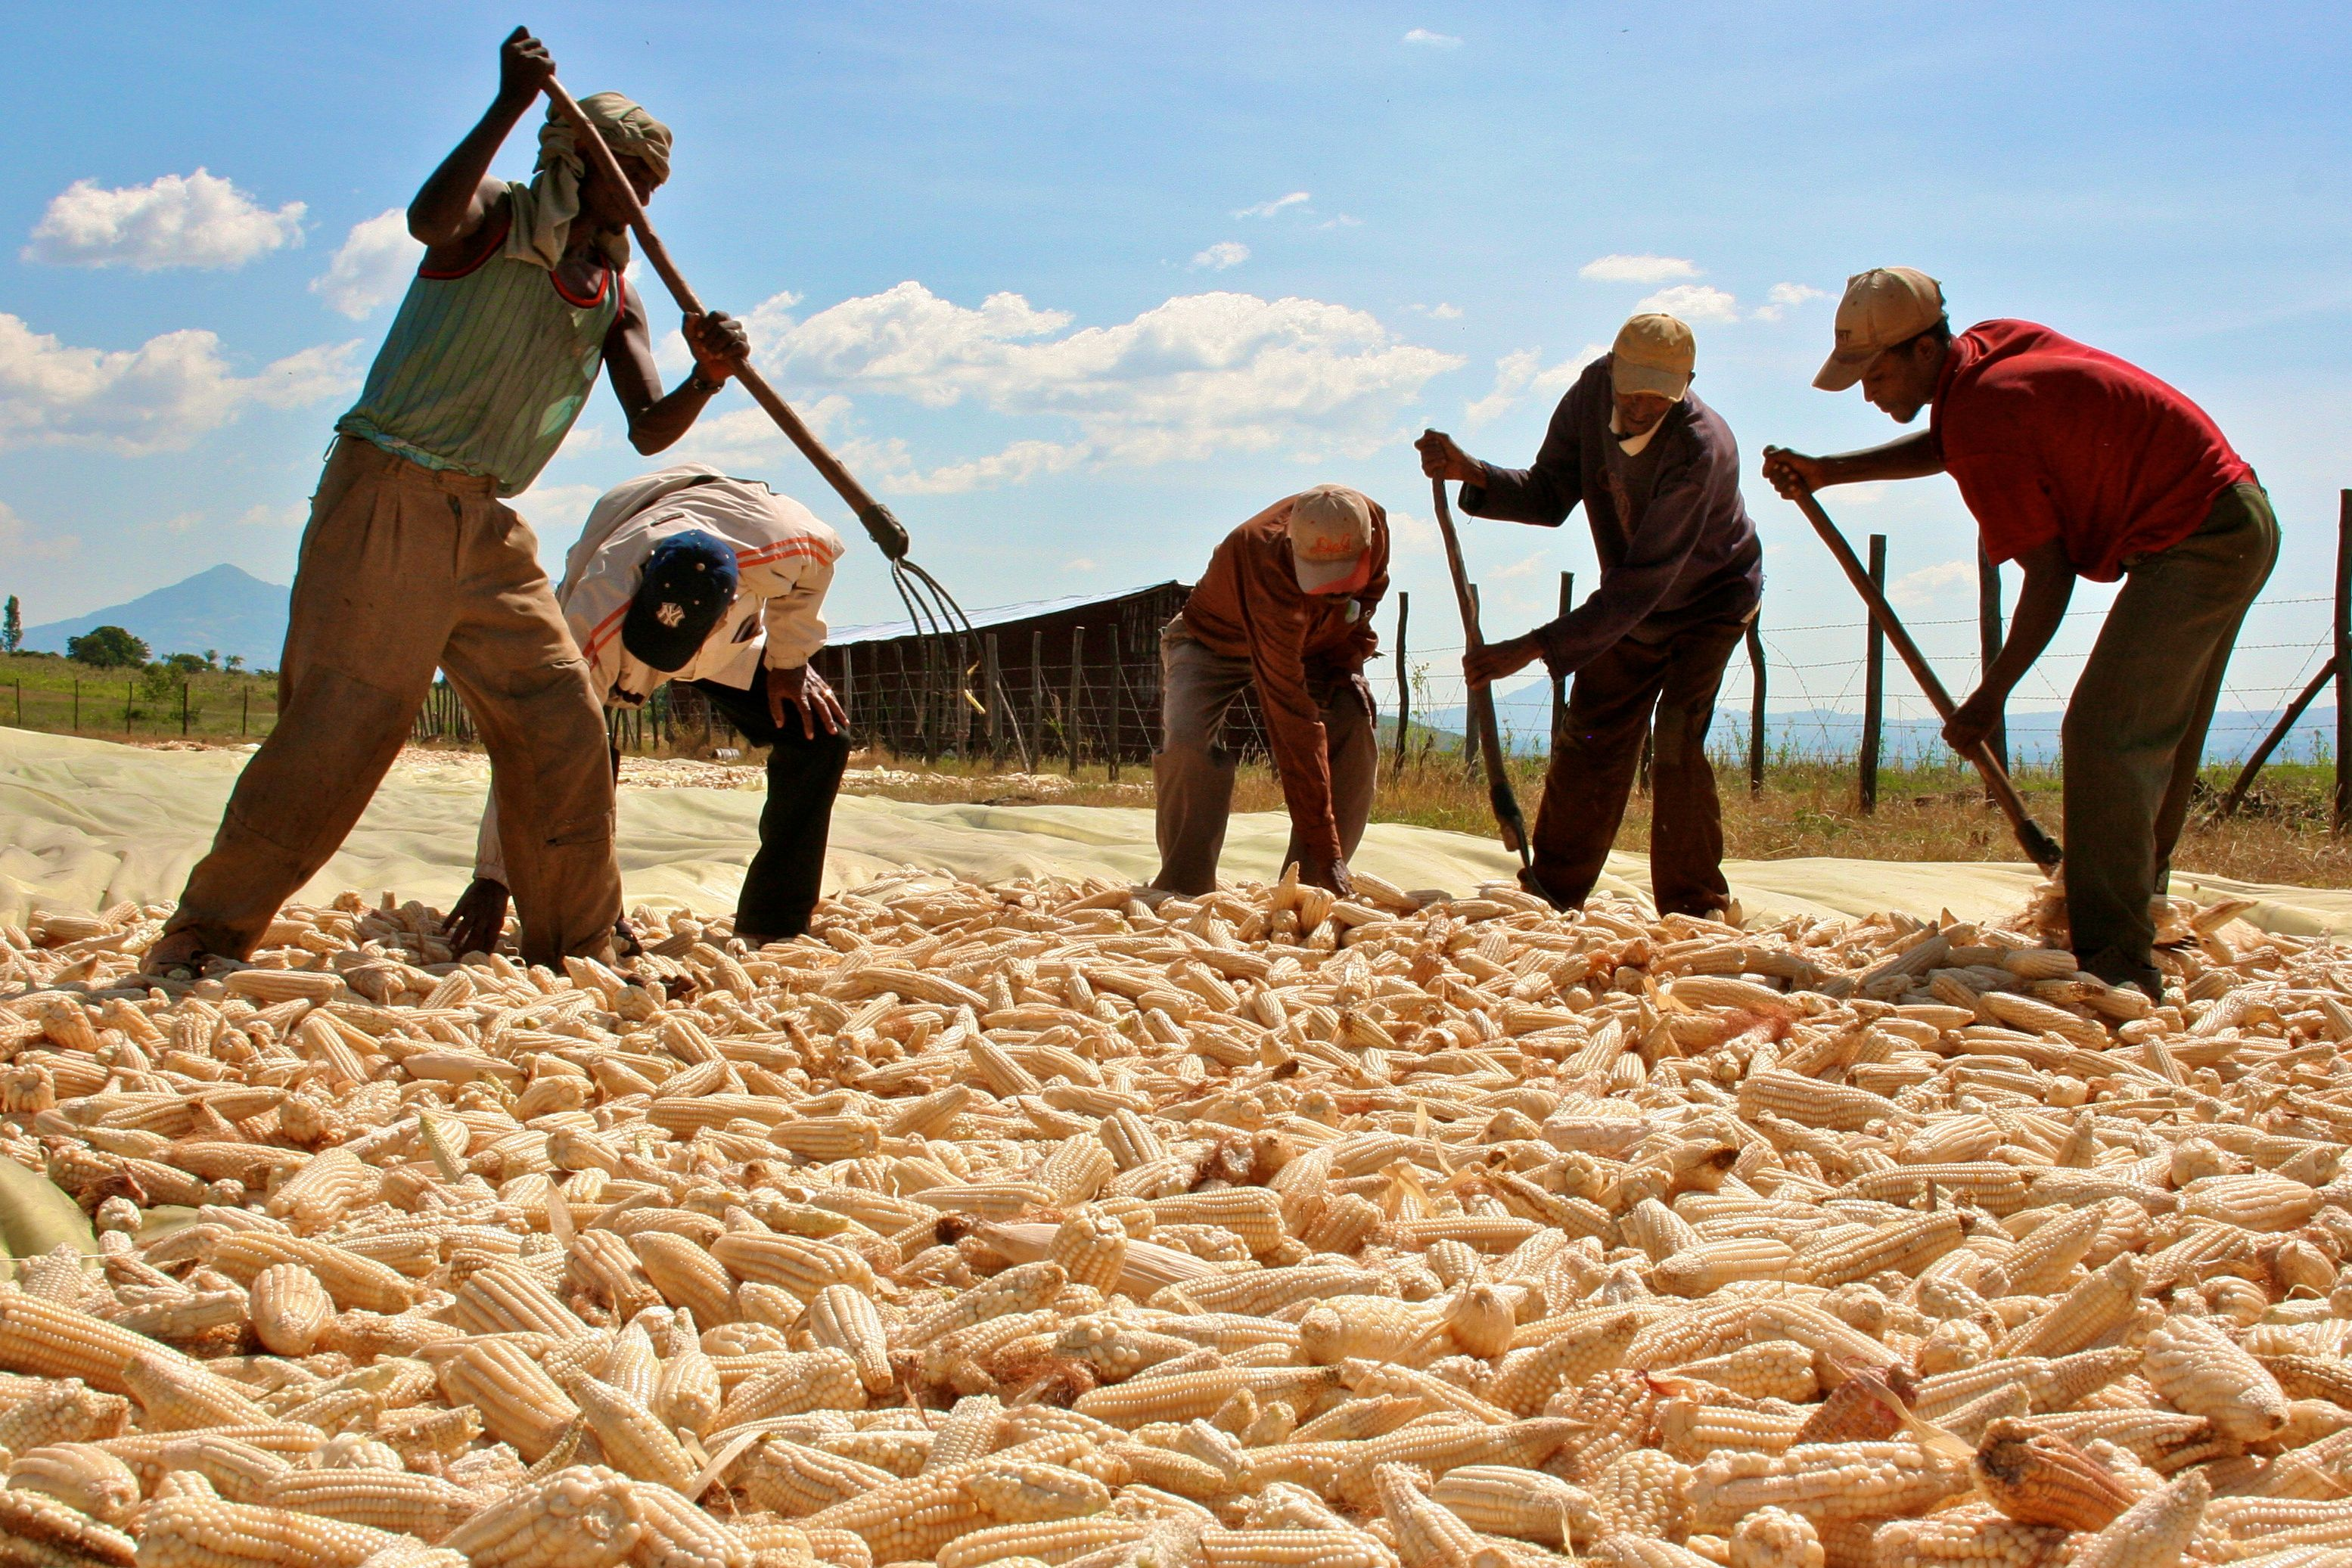 Managers with Karuturi, an Indian company with four commercial farms in Ethiopia, check the corn harvested by workers at Karuturi's farm in Bako, central Ethiopia November 6, 2009.   REUTERS/Barry Malone/File Photo